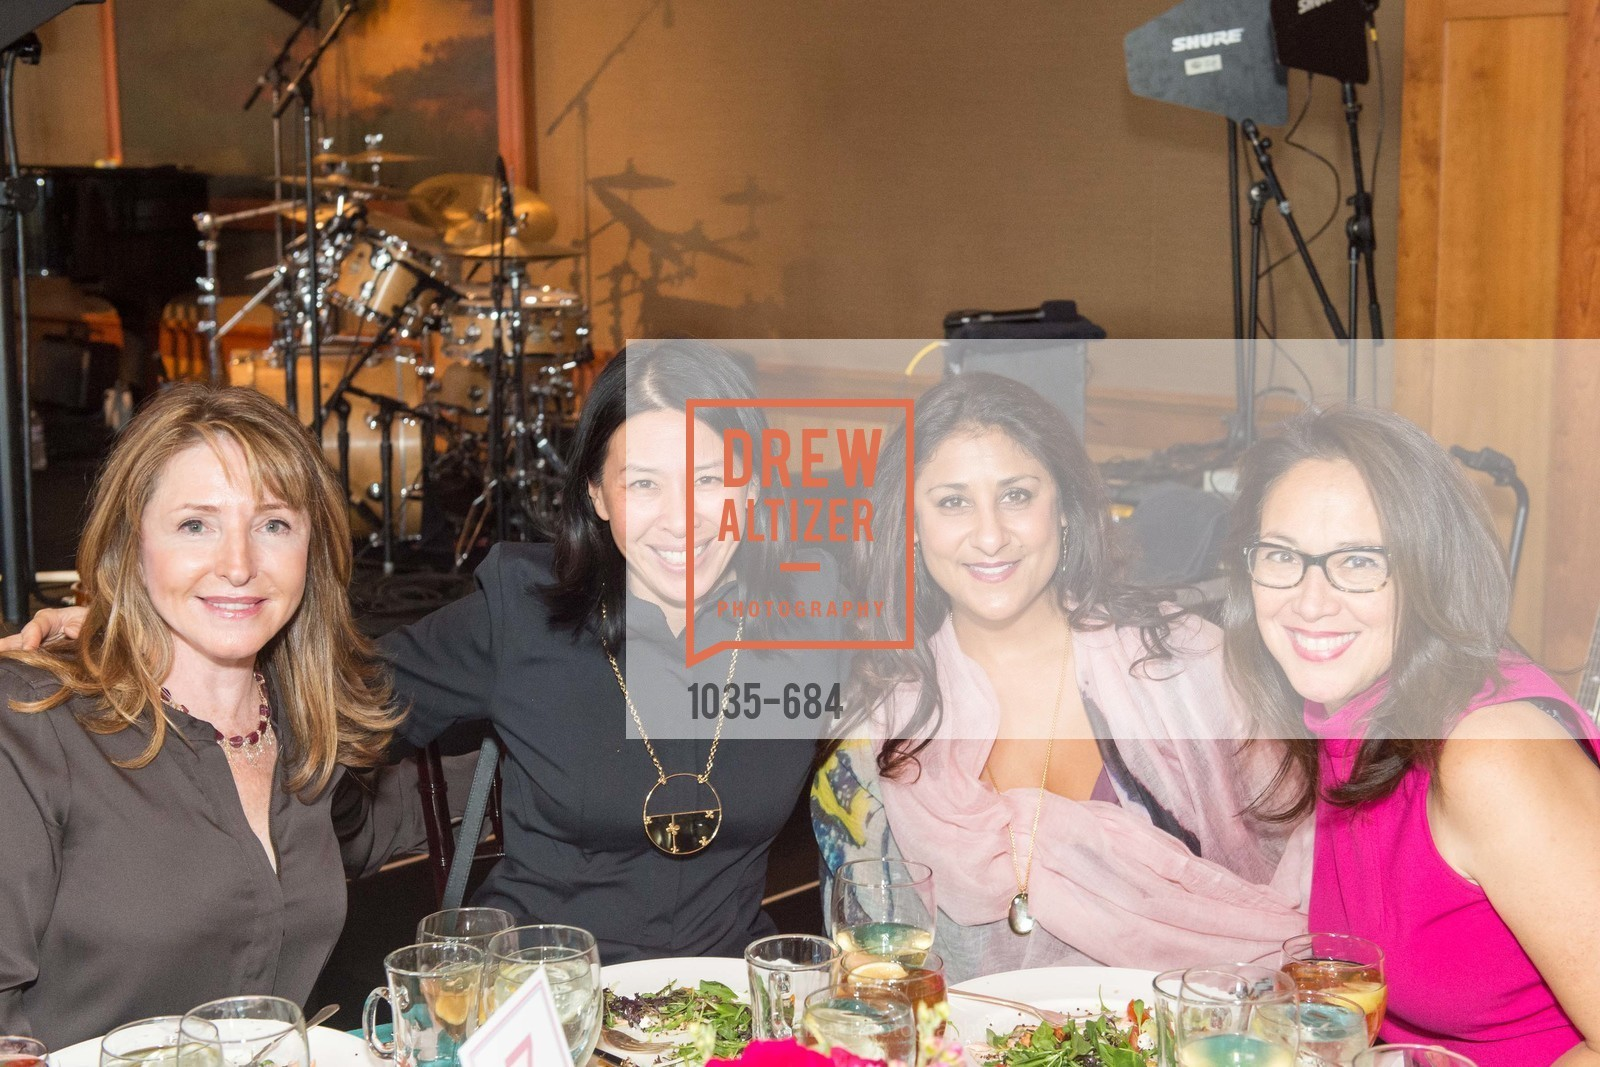 Rhona Thompson, Lisa O'Kelly, Anu Khatod, Tiger Bachler, Under One Umbrella, Sharon Heights Golf and Country Club, January 13th, 2016,Drew Altizer, Drew Altizer Photography, full-service event agency, private events, San Francisco photographer, photographer California